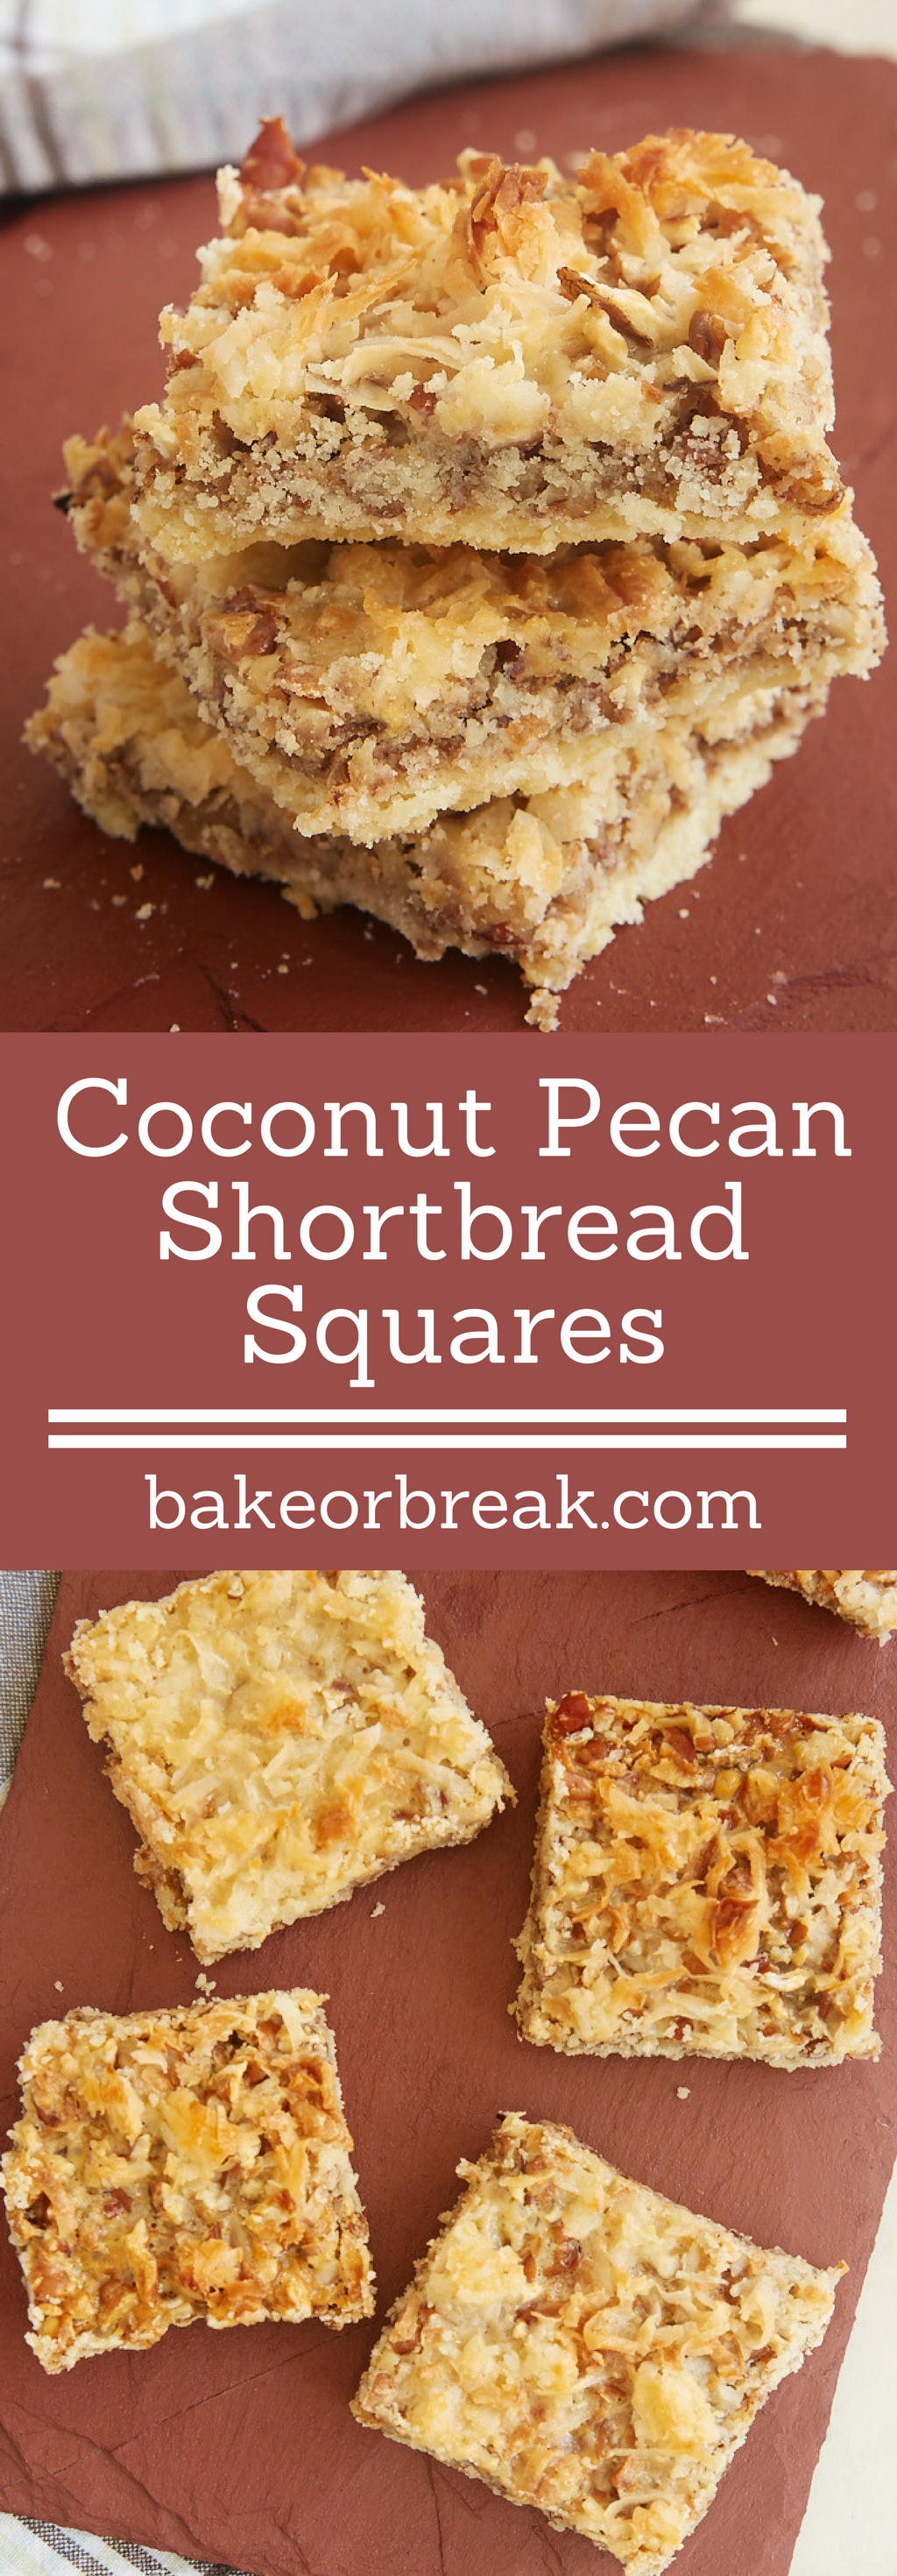 ***Coconut Pecan Shortbread Squares ~ you only need 5 ingredients to make these sweet, nutty, chewy, gooey, delicious Coconut Pecan Shortbread Squares.